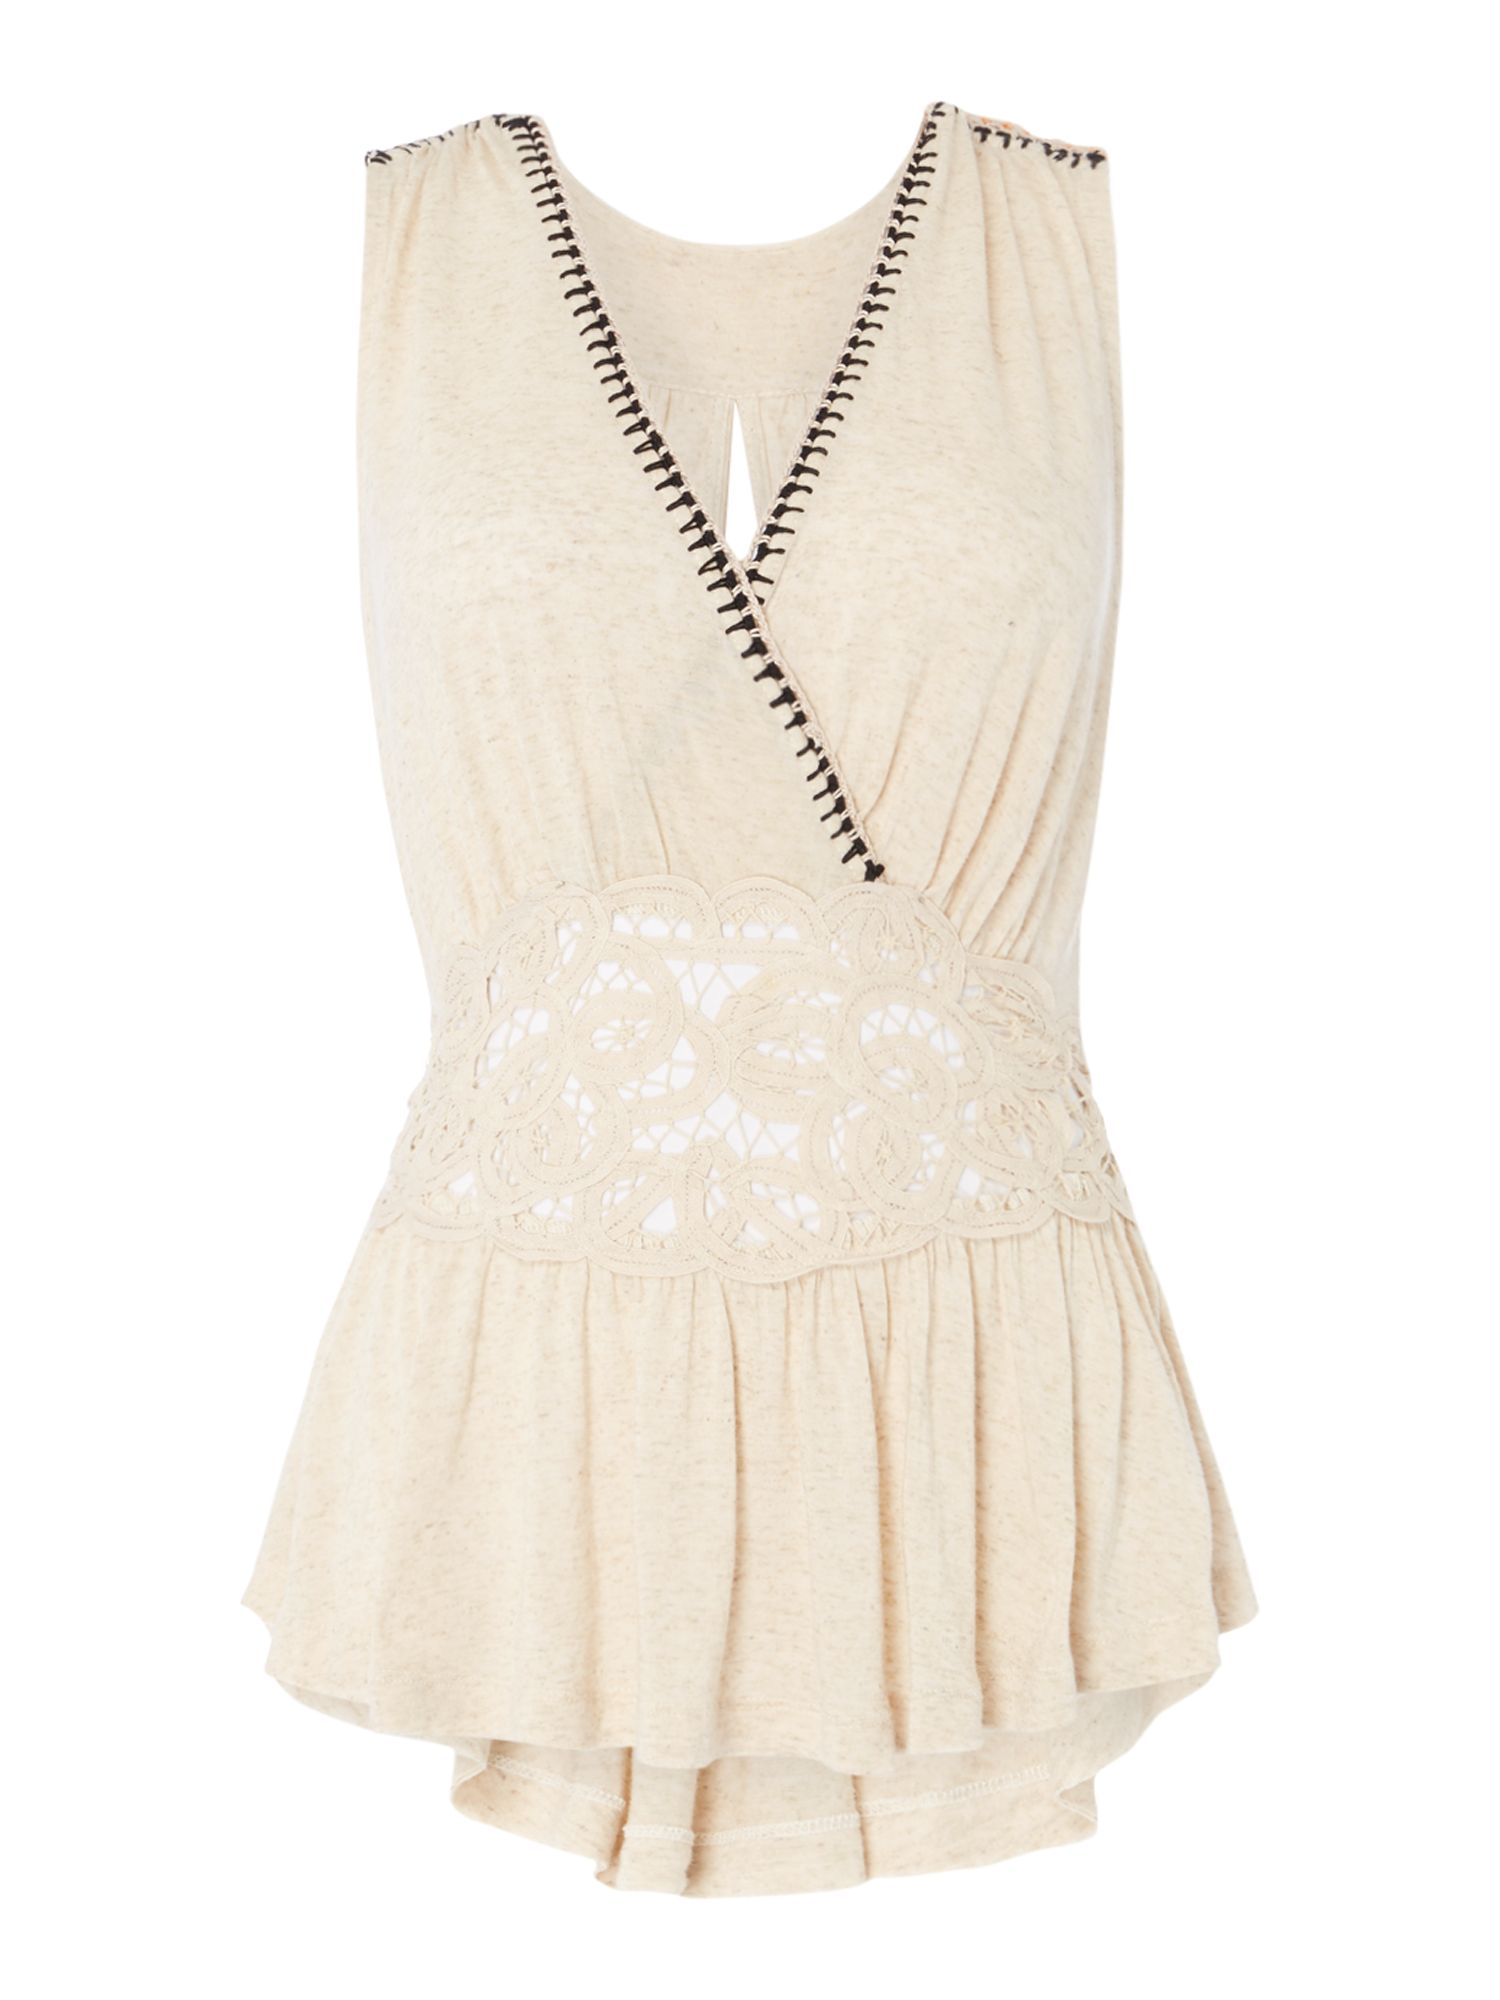 Free People Megan Peplum Top With Lace Insert, Cream